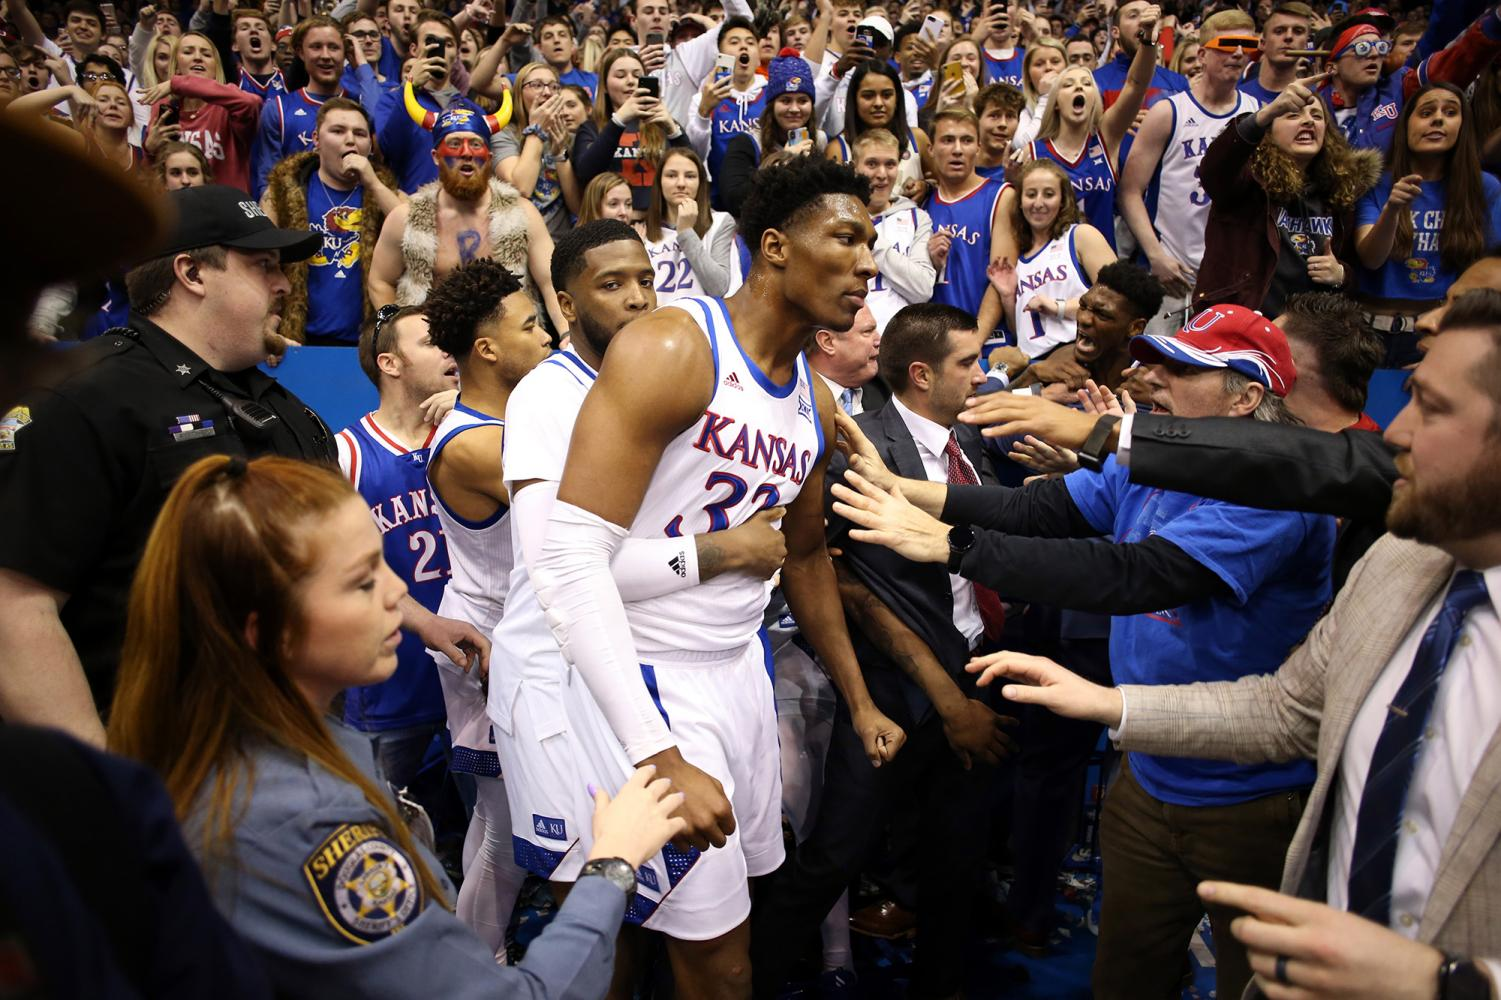 Kansas' David McCormack (33) is held back by teammate Isaiah Moss during a brawl following a game against rival Kansas State at Allen Fieldhouse in Lawrence, Kansas, on Tuesday. Kansas won, 81-60.